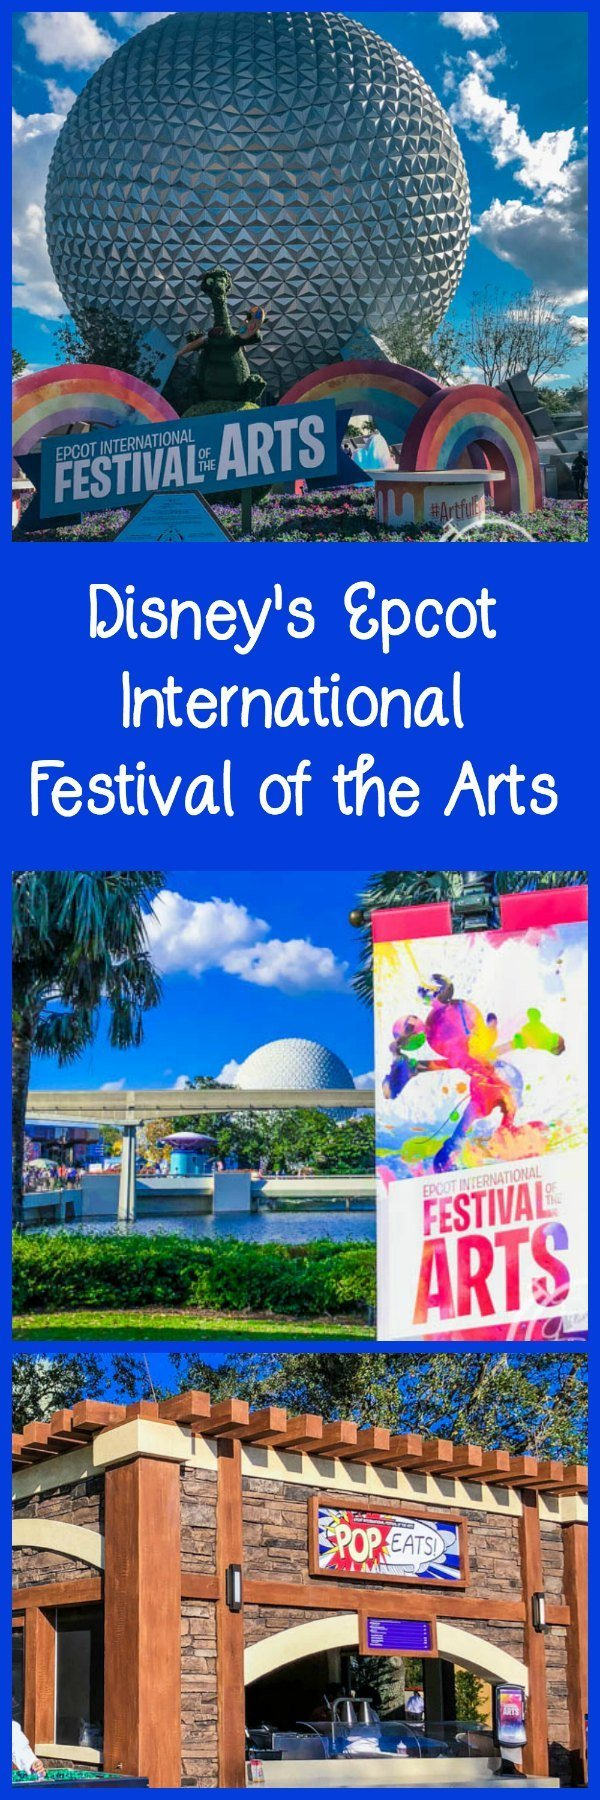 All About the Epcot International Festival of the Arts at Walt Disney World, including food, entertainment, seminars, and merchandise.